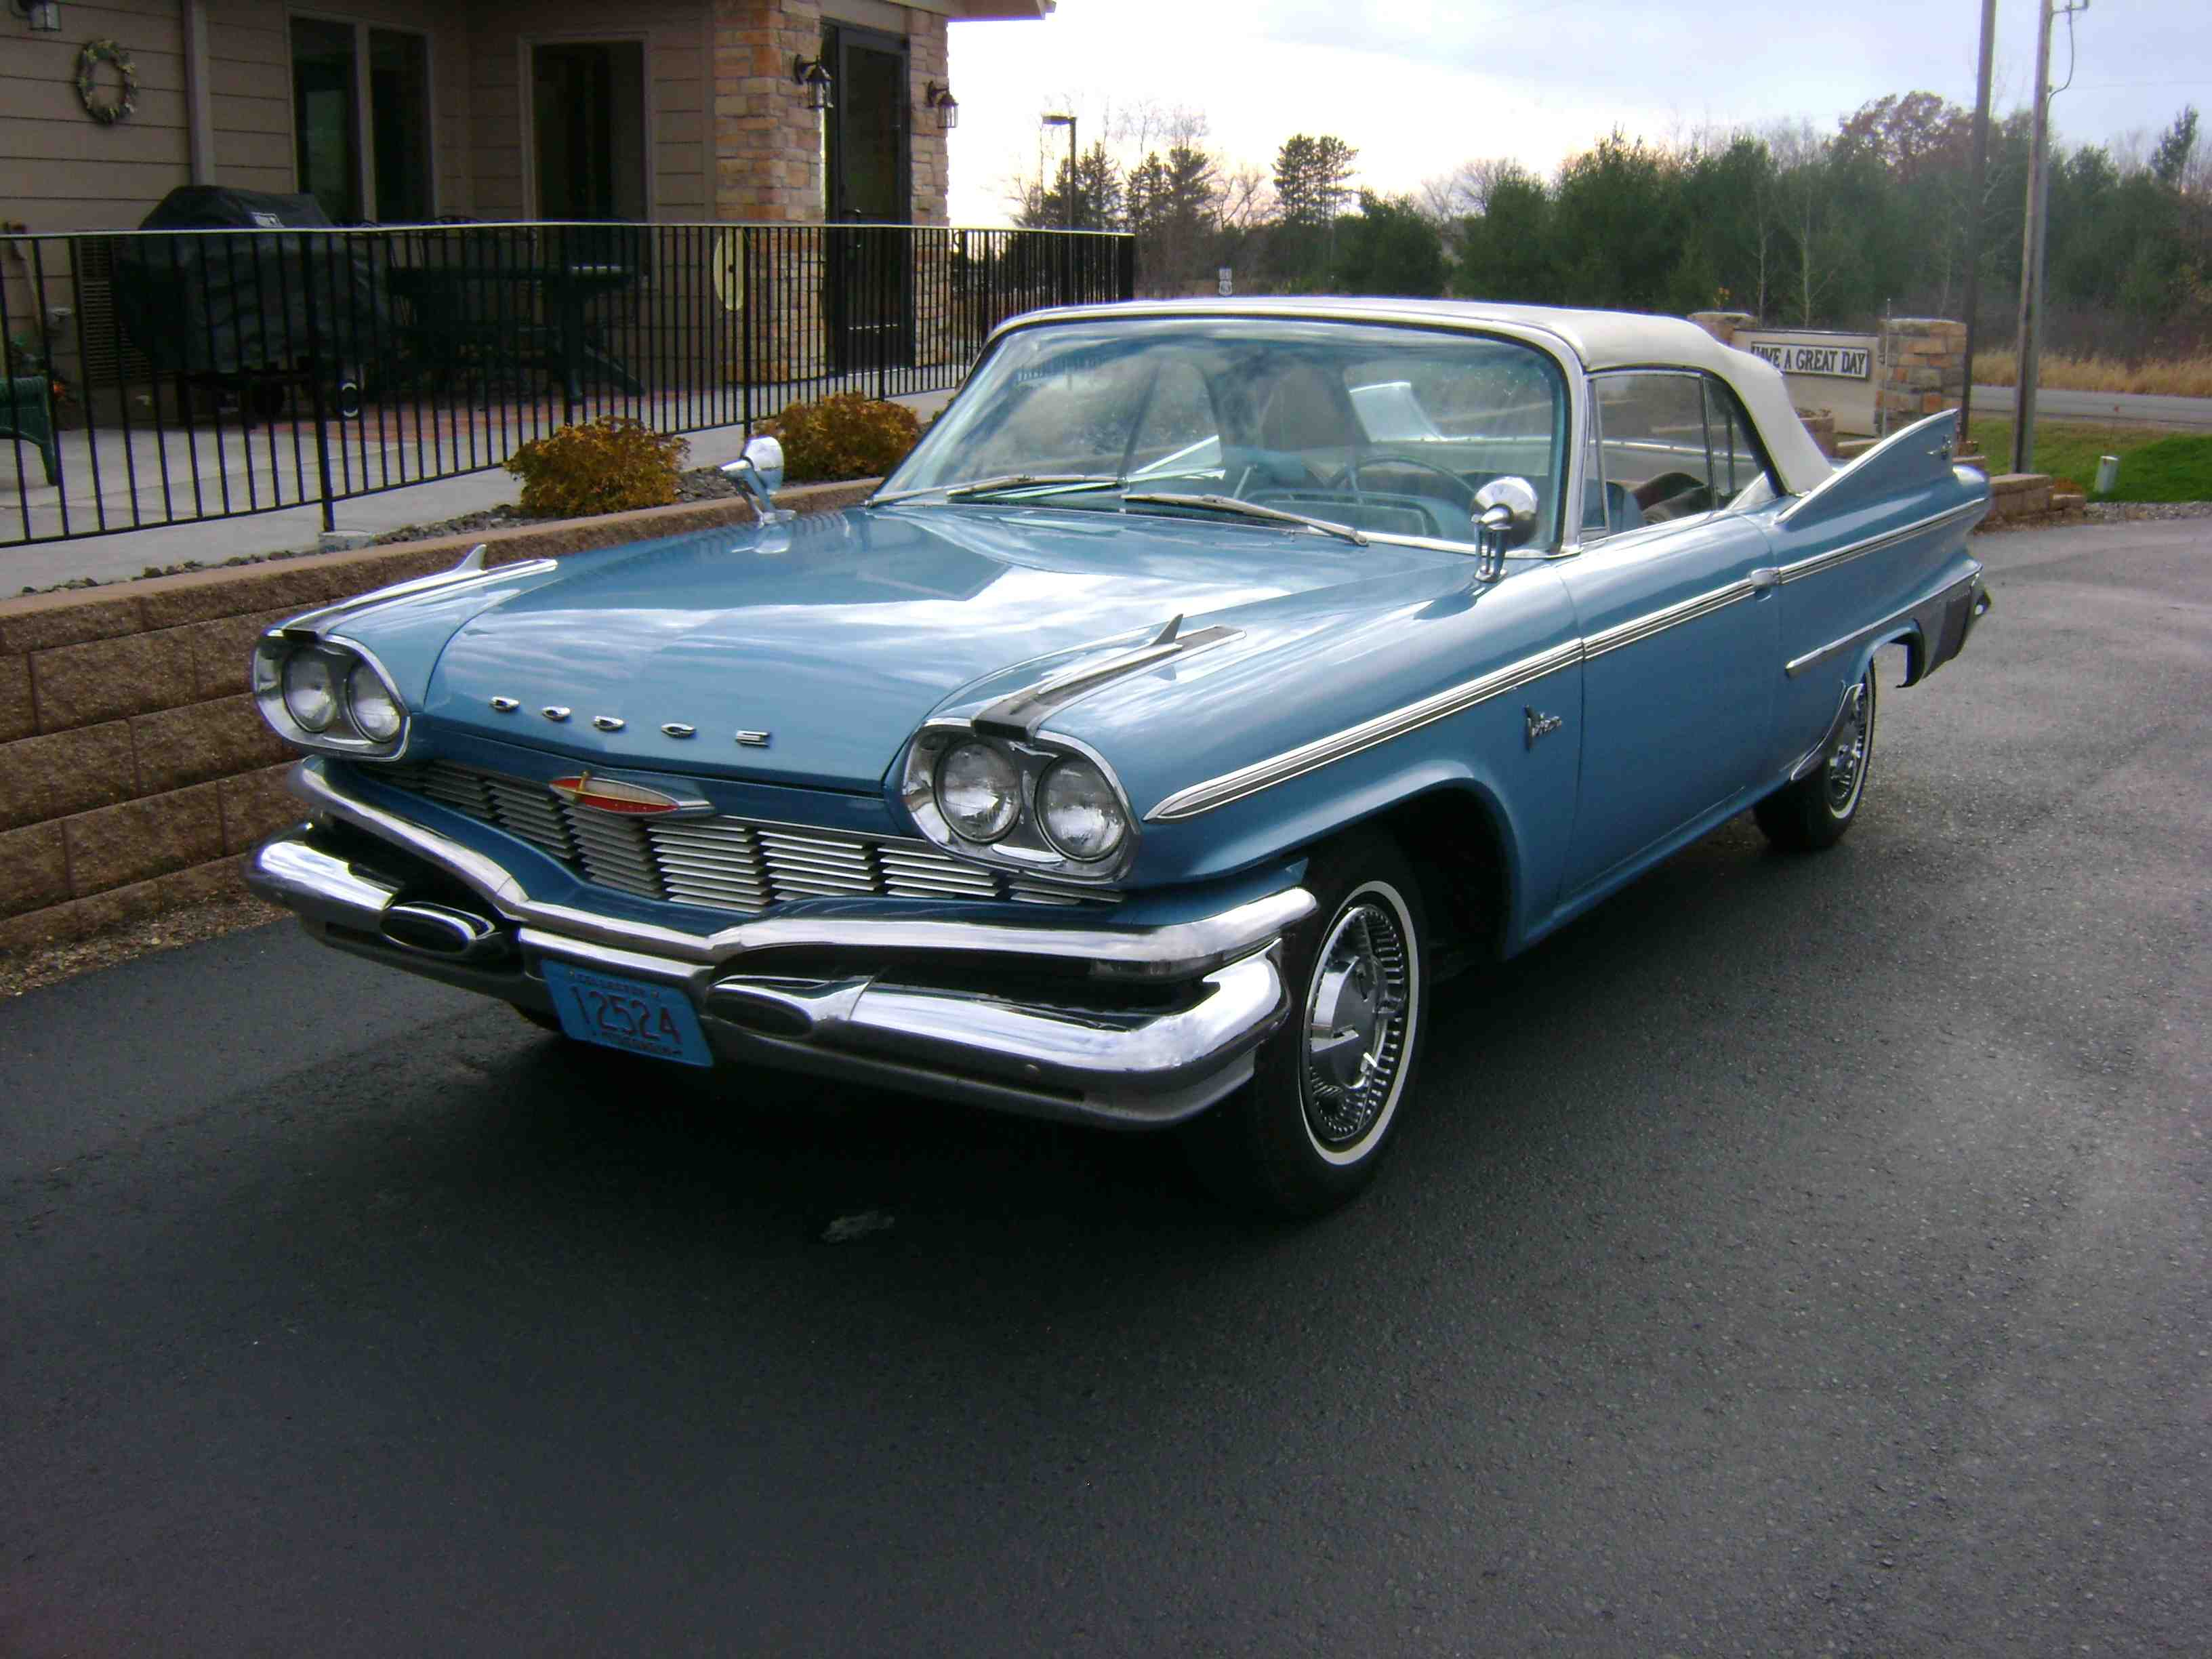 1960 dodge polara convertible d500 car is for sale contact brad at